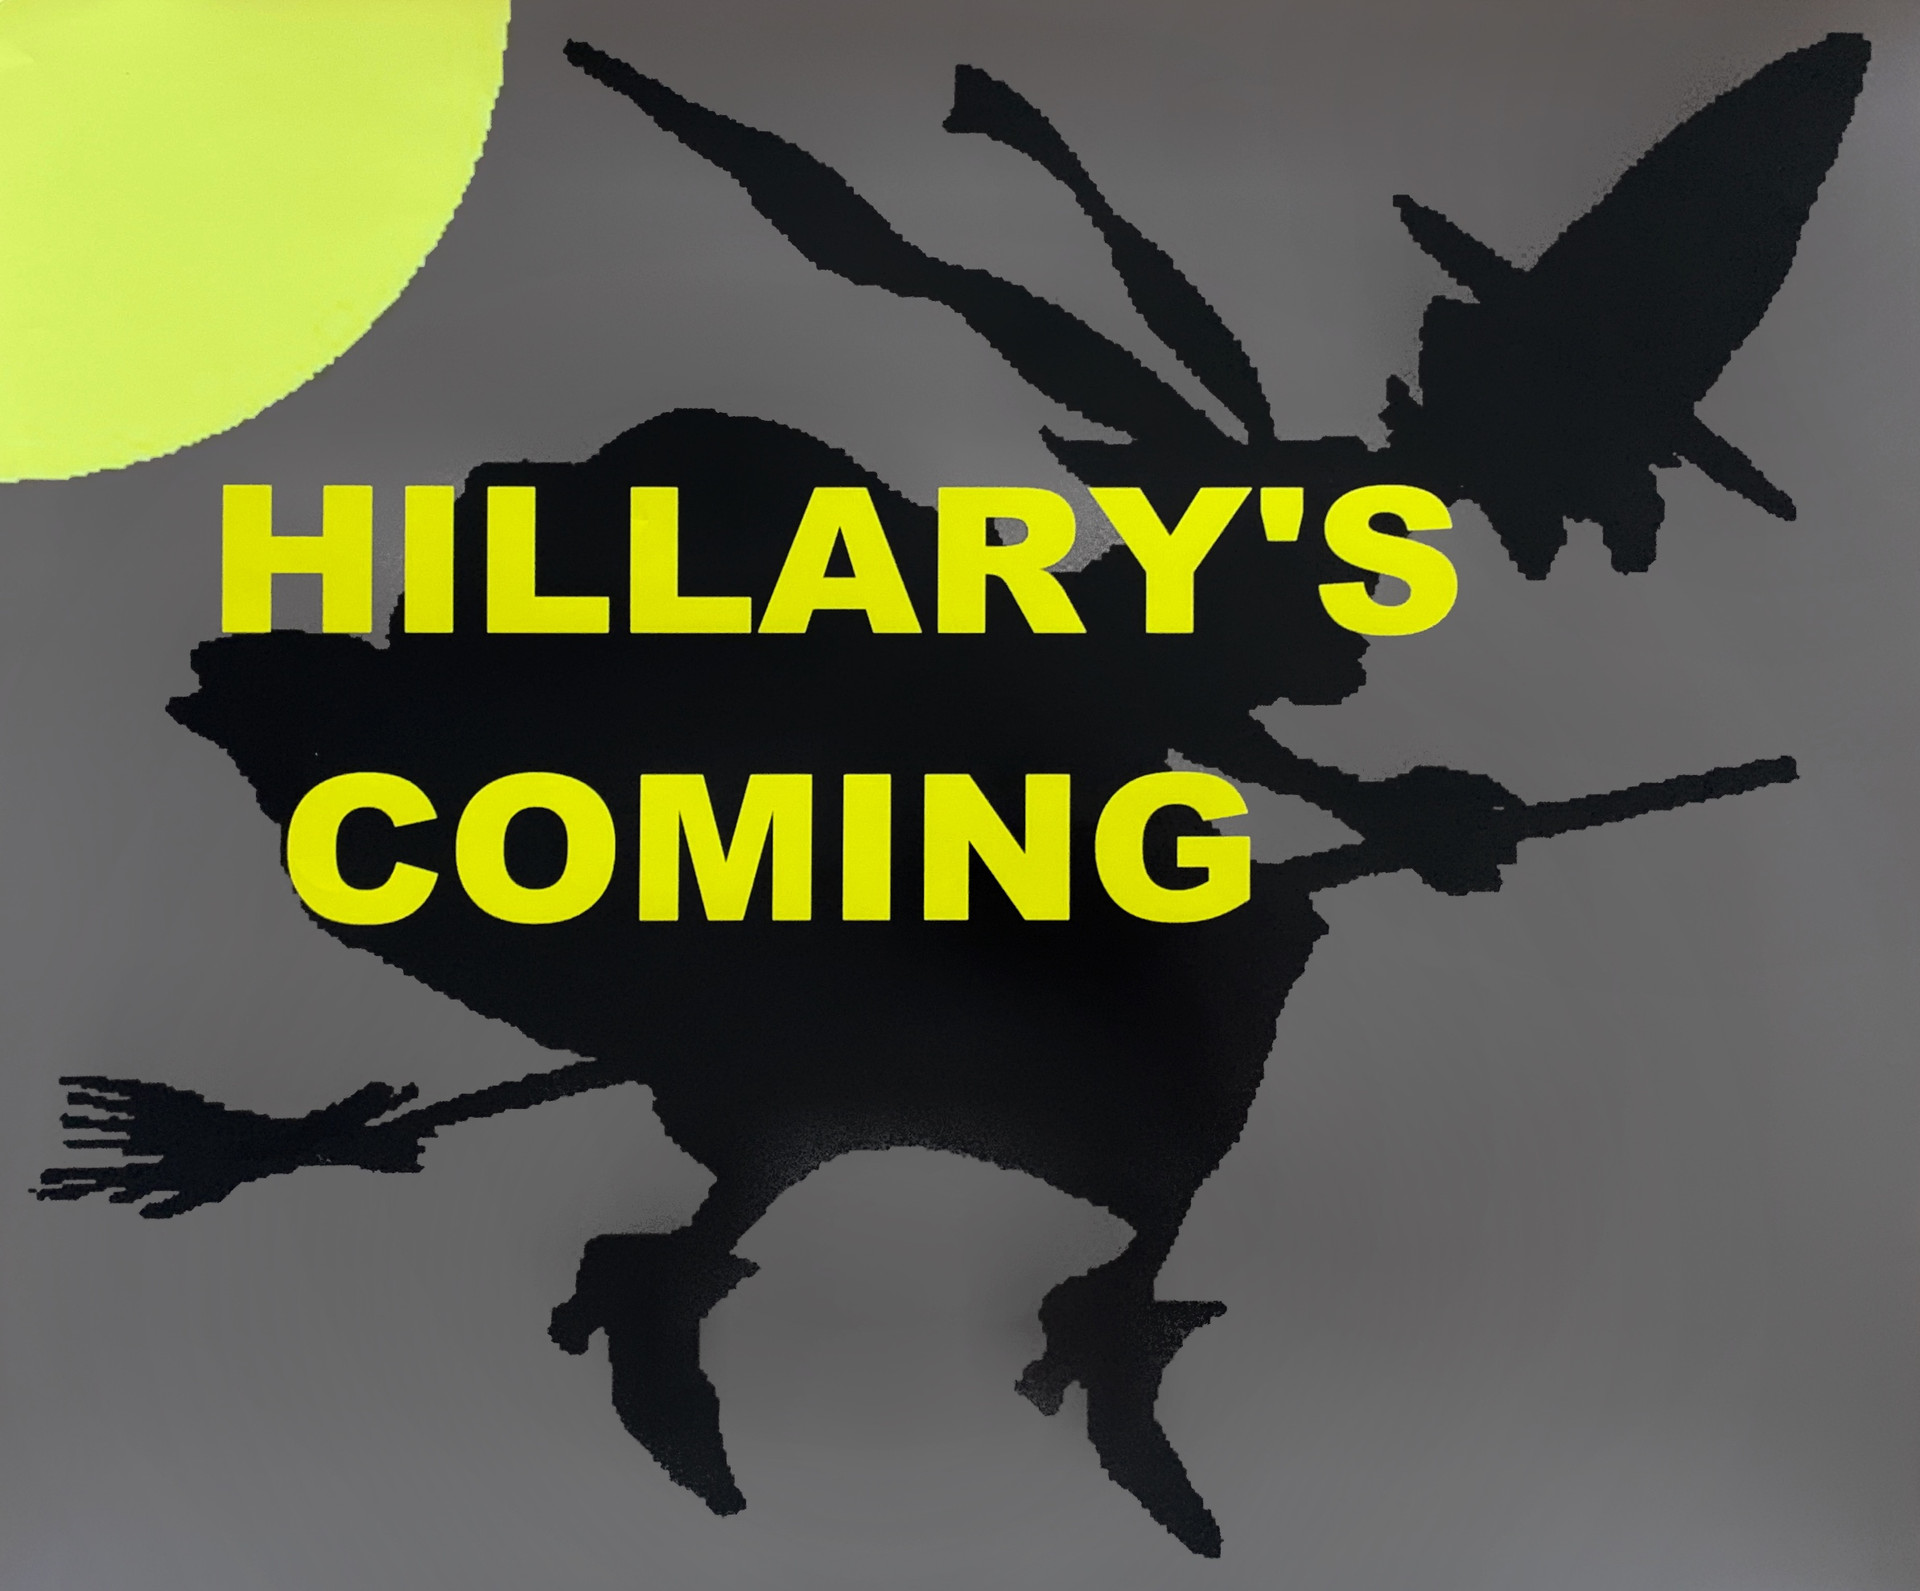 Hillary as Wicked Witch (Hillary's Coming)